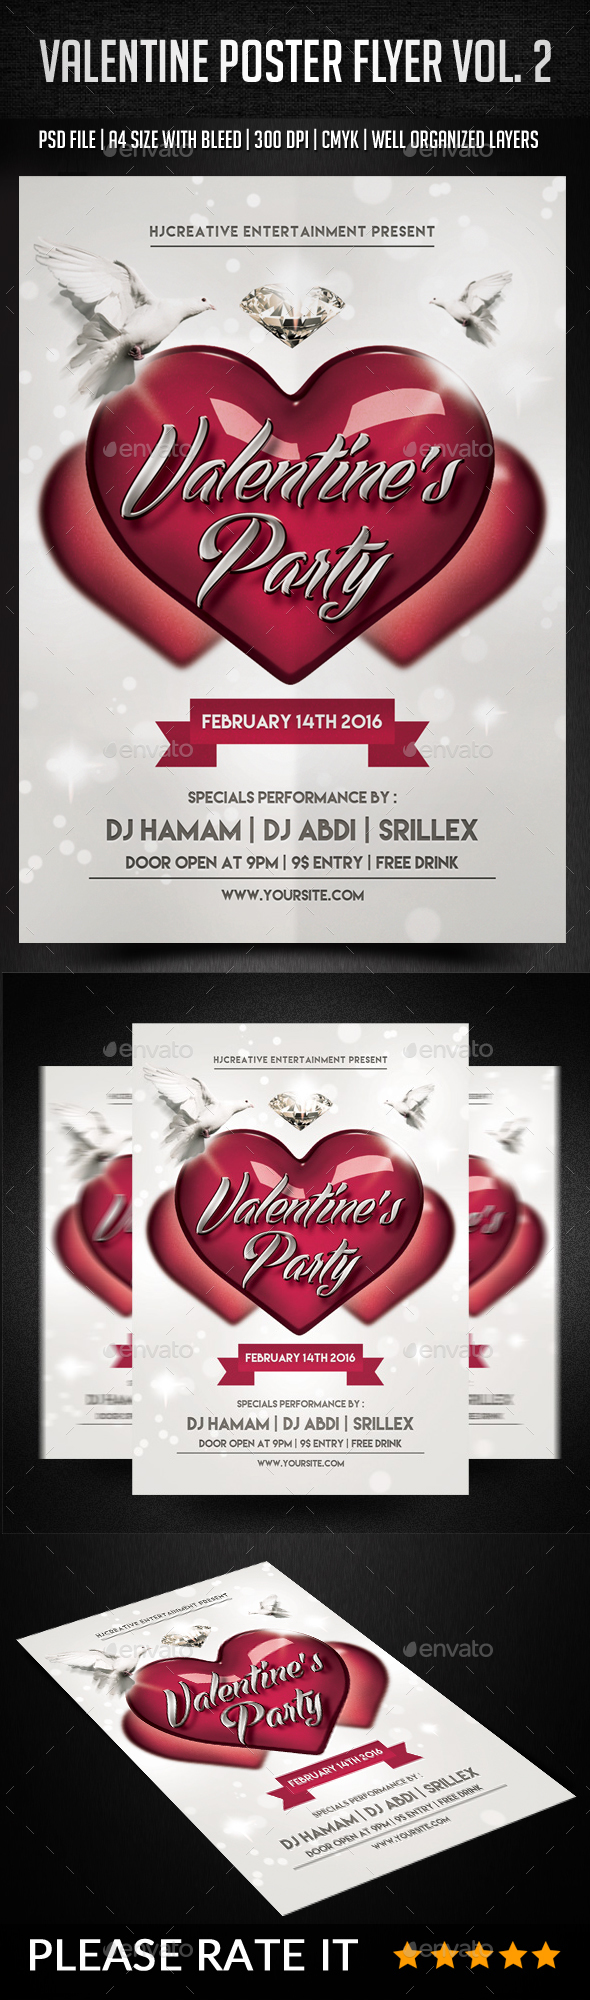 Valentine Poster Flyer Vol. 2 - Events Flyers